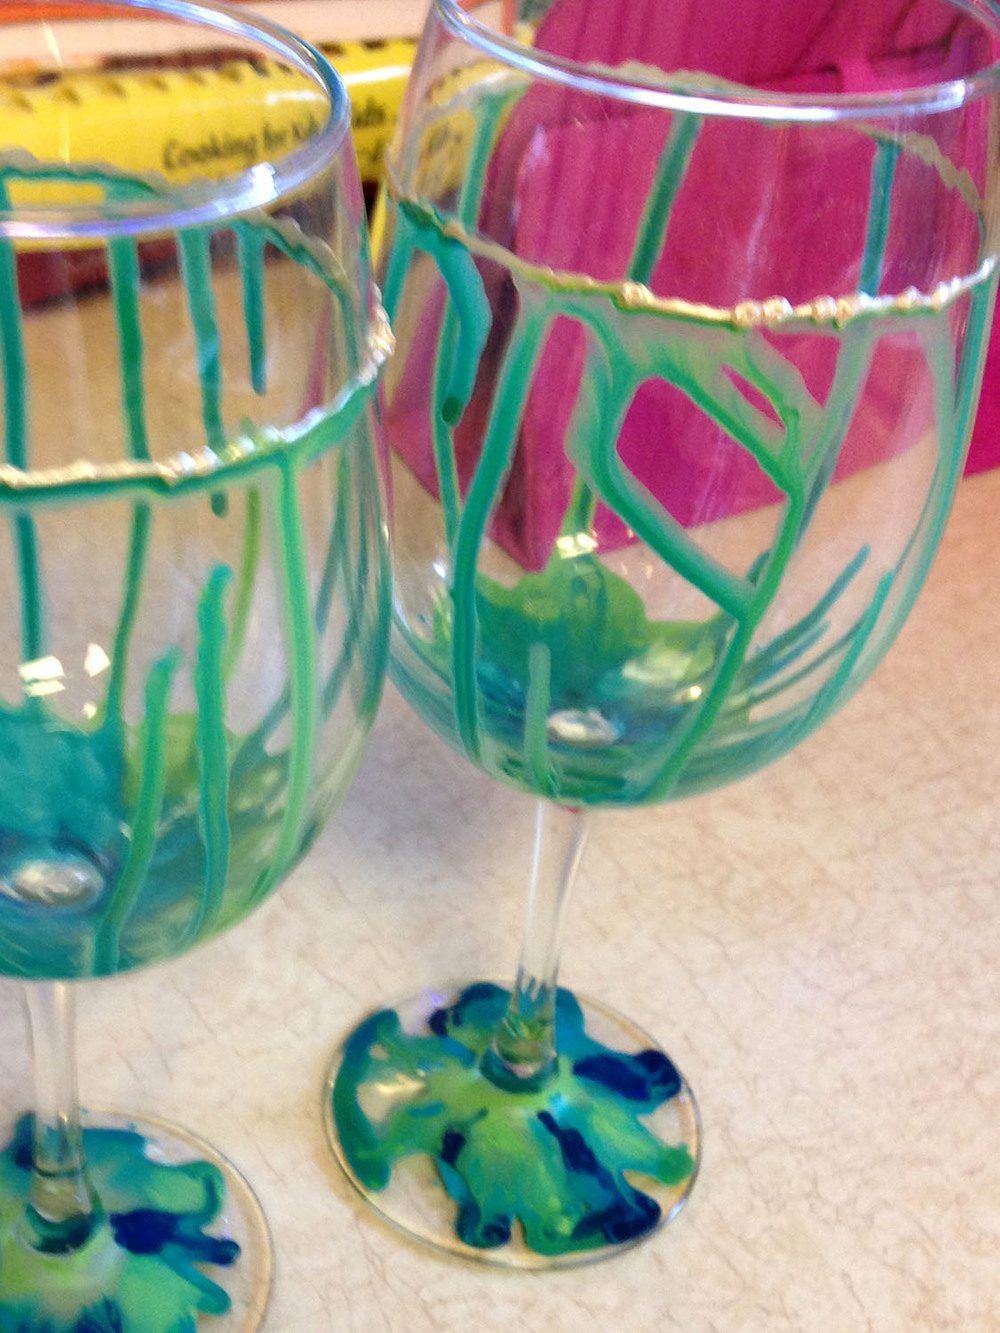 pair-of-blue-and-green-painted-wine-glass-class-art-by-tjm-studio-greensboro-img_0186.jpg